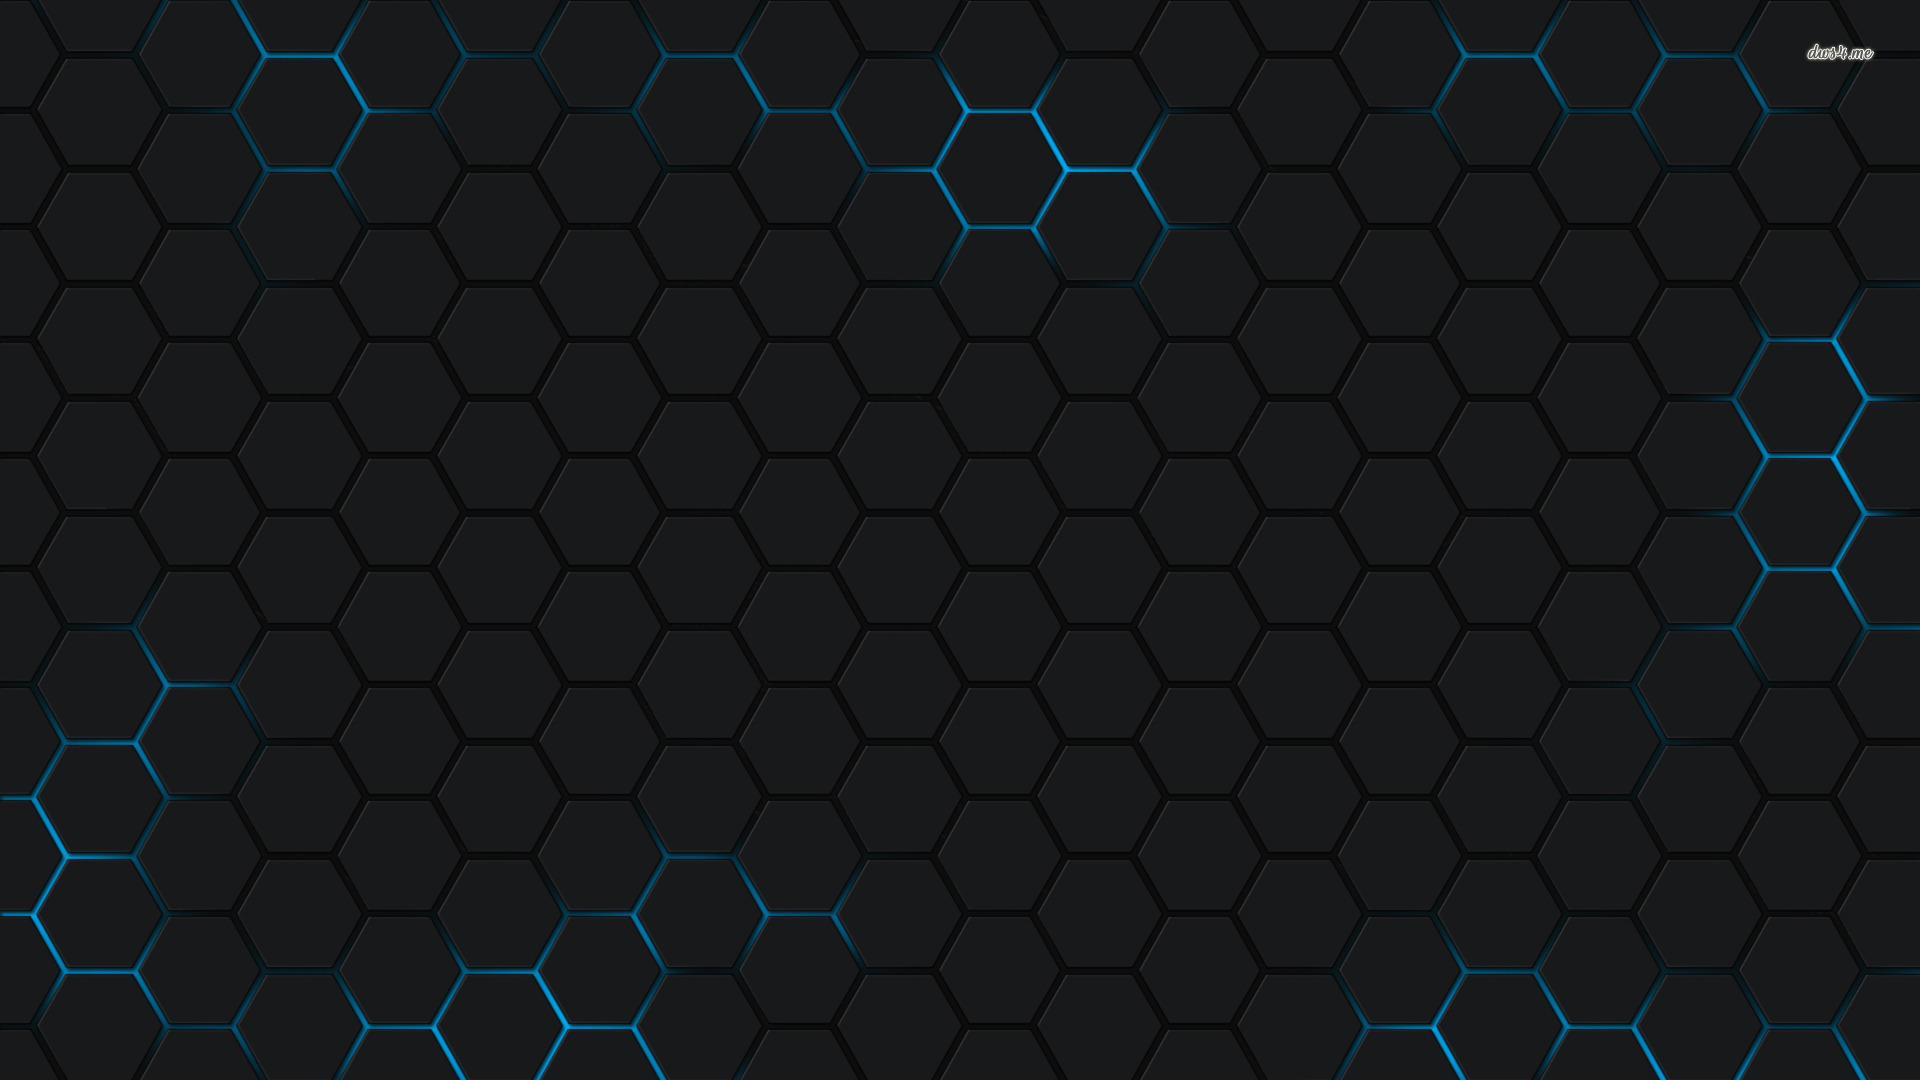 Hexagon Texture Wallpaper | Wallpaper Wide HD - Cliparts.co